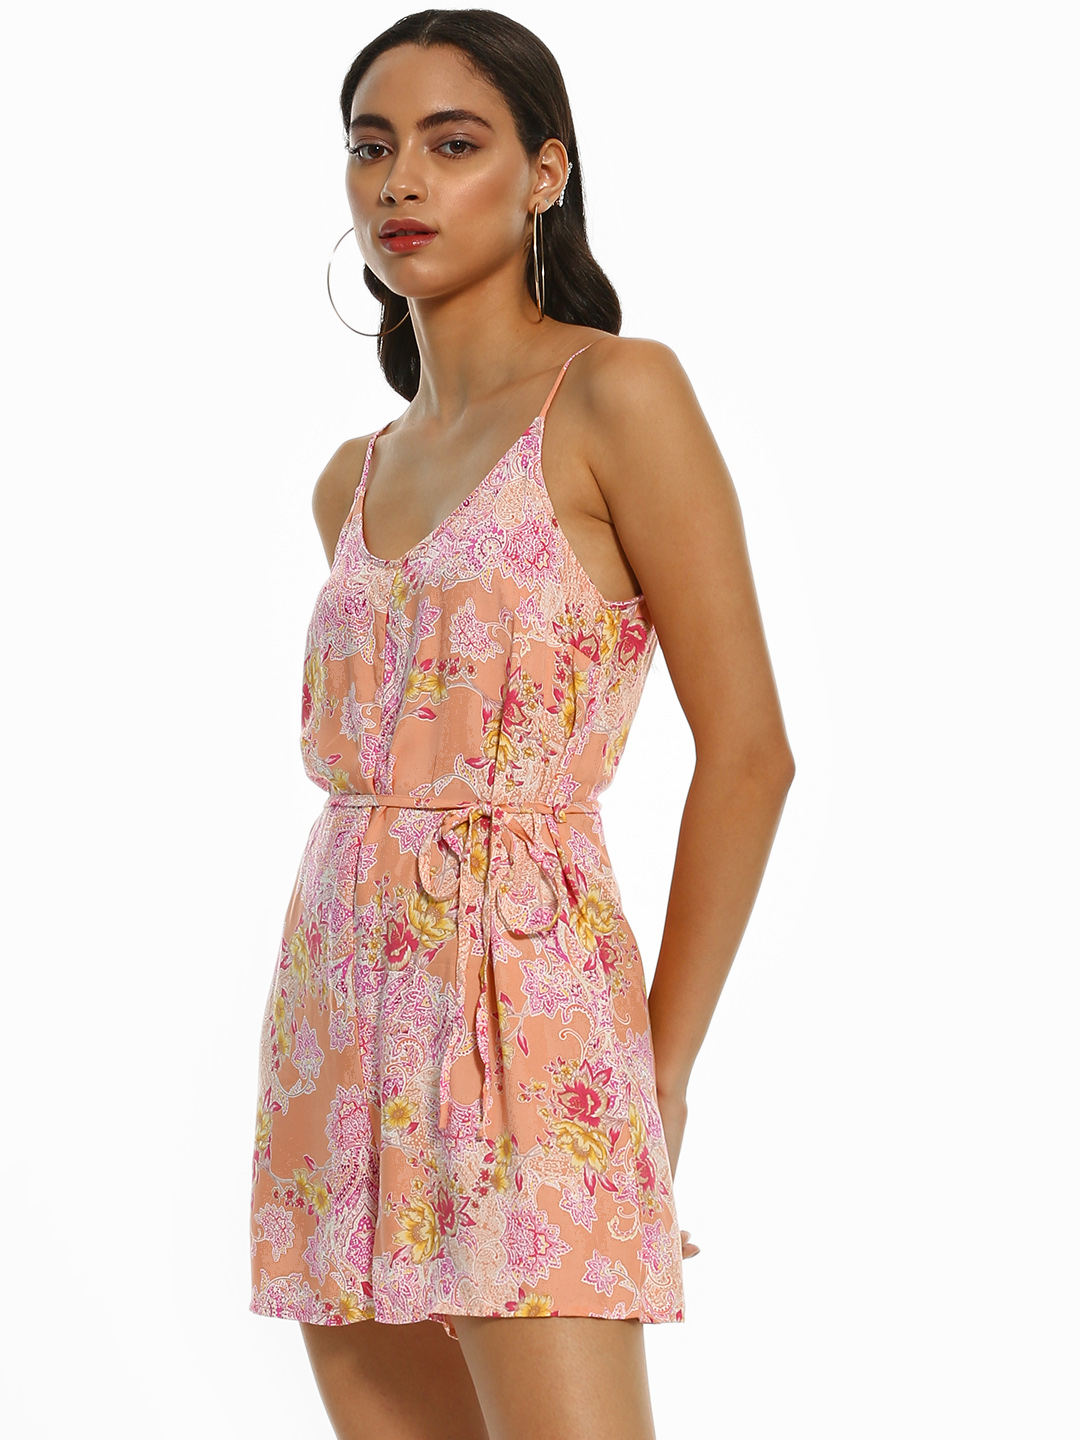 New Look Pink Floral Paisley Print Playsuit 1